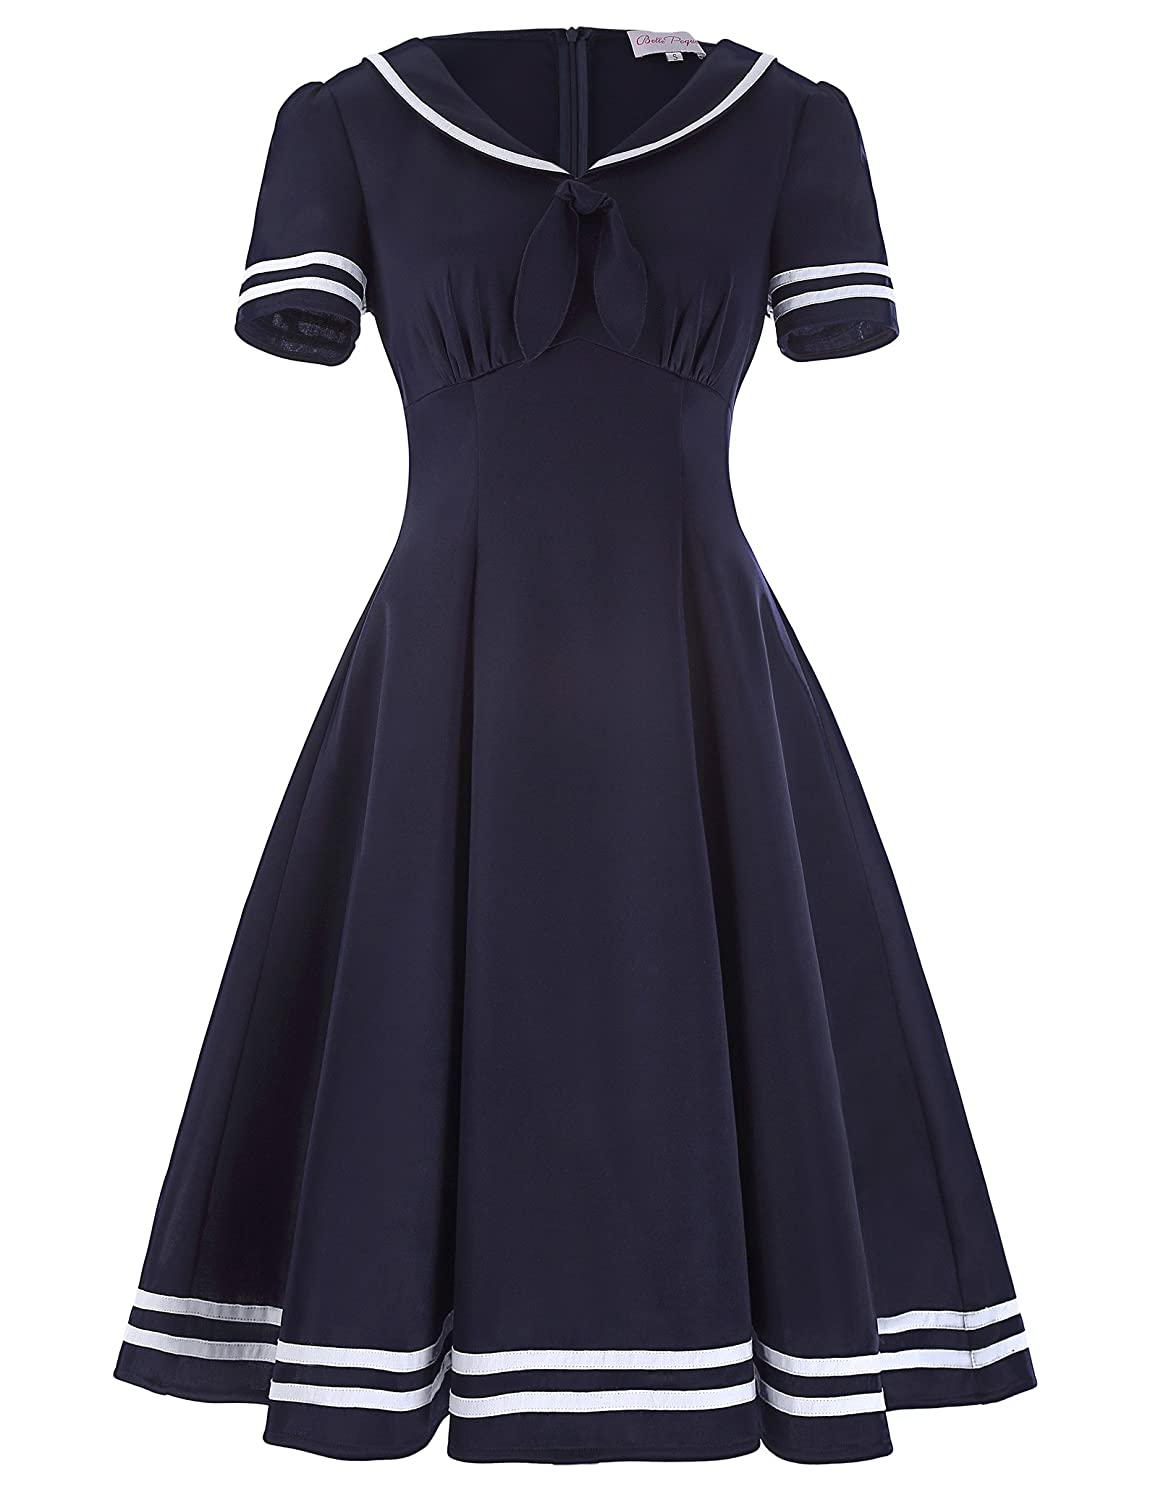 Sailor Dresses, Nautical Theme Dress, WW2 Dresses Belle Poque Womens Retro Sailor Dress Short Sleeve Cocktail Party Swing Dress $29.99 AT vintagedancer.com